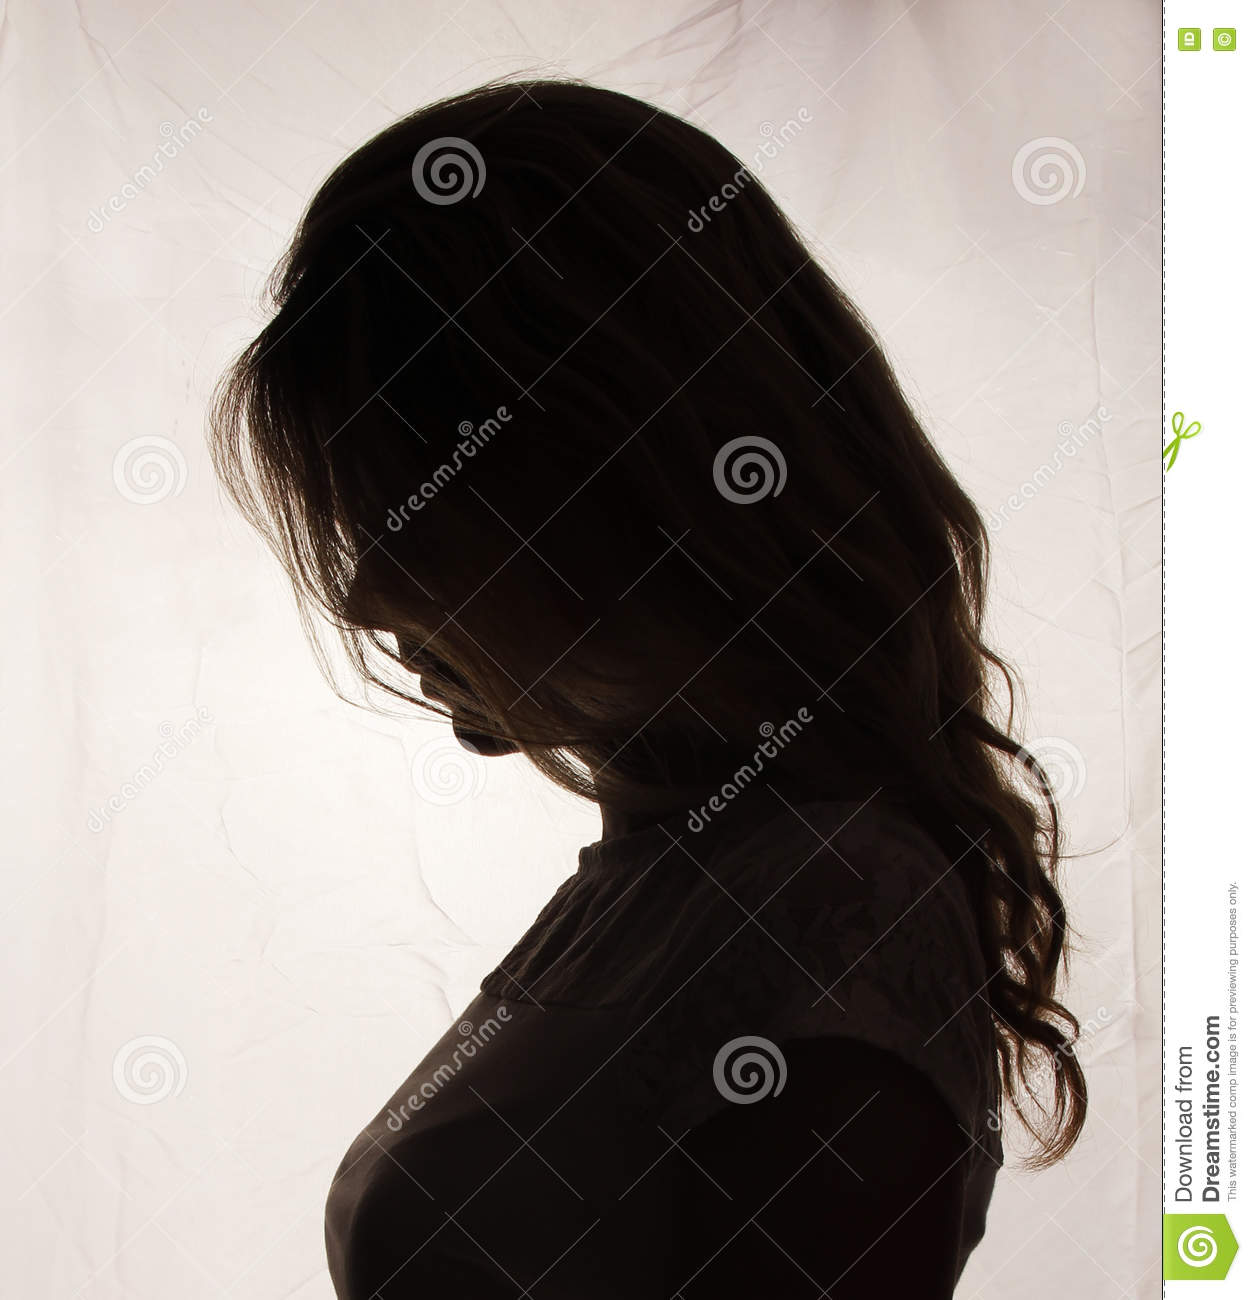 Maternity Silhouette stock photo. Image of model, health